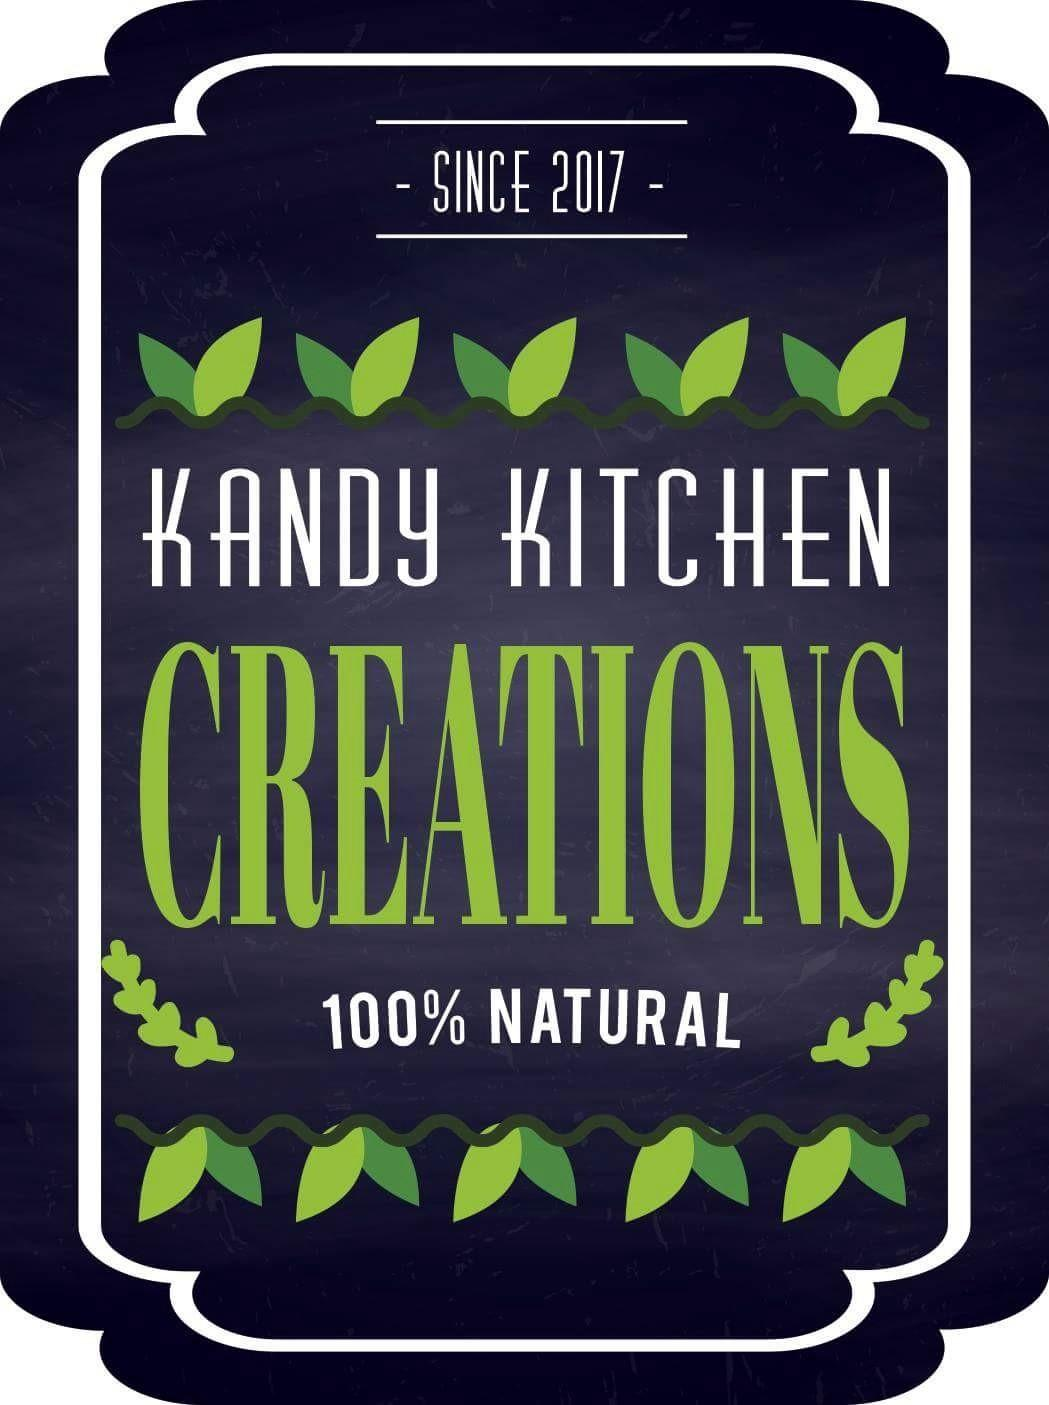 Kandy Kitchen Creations